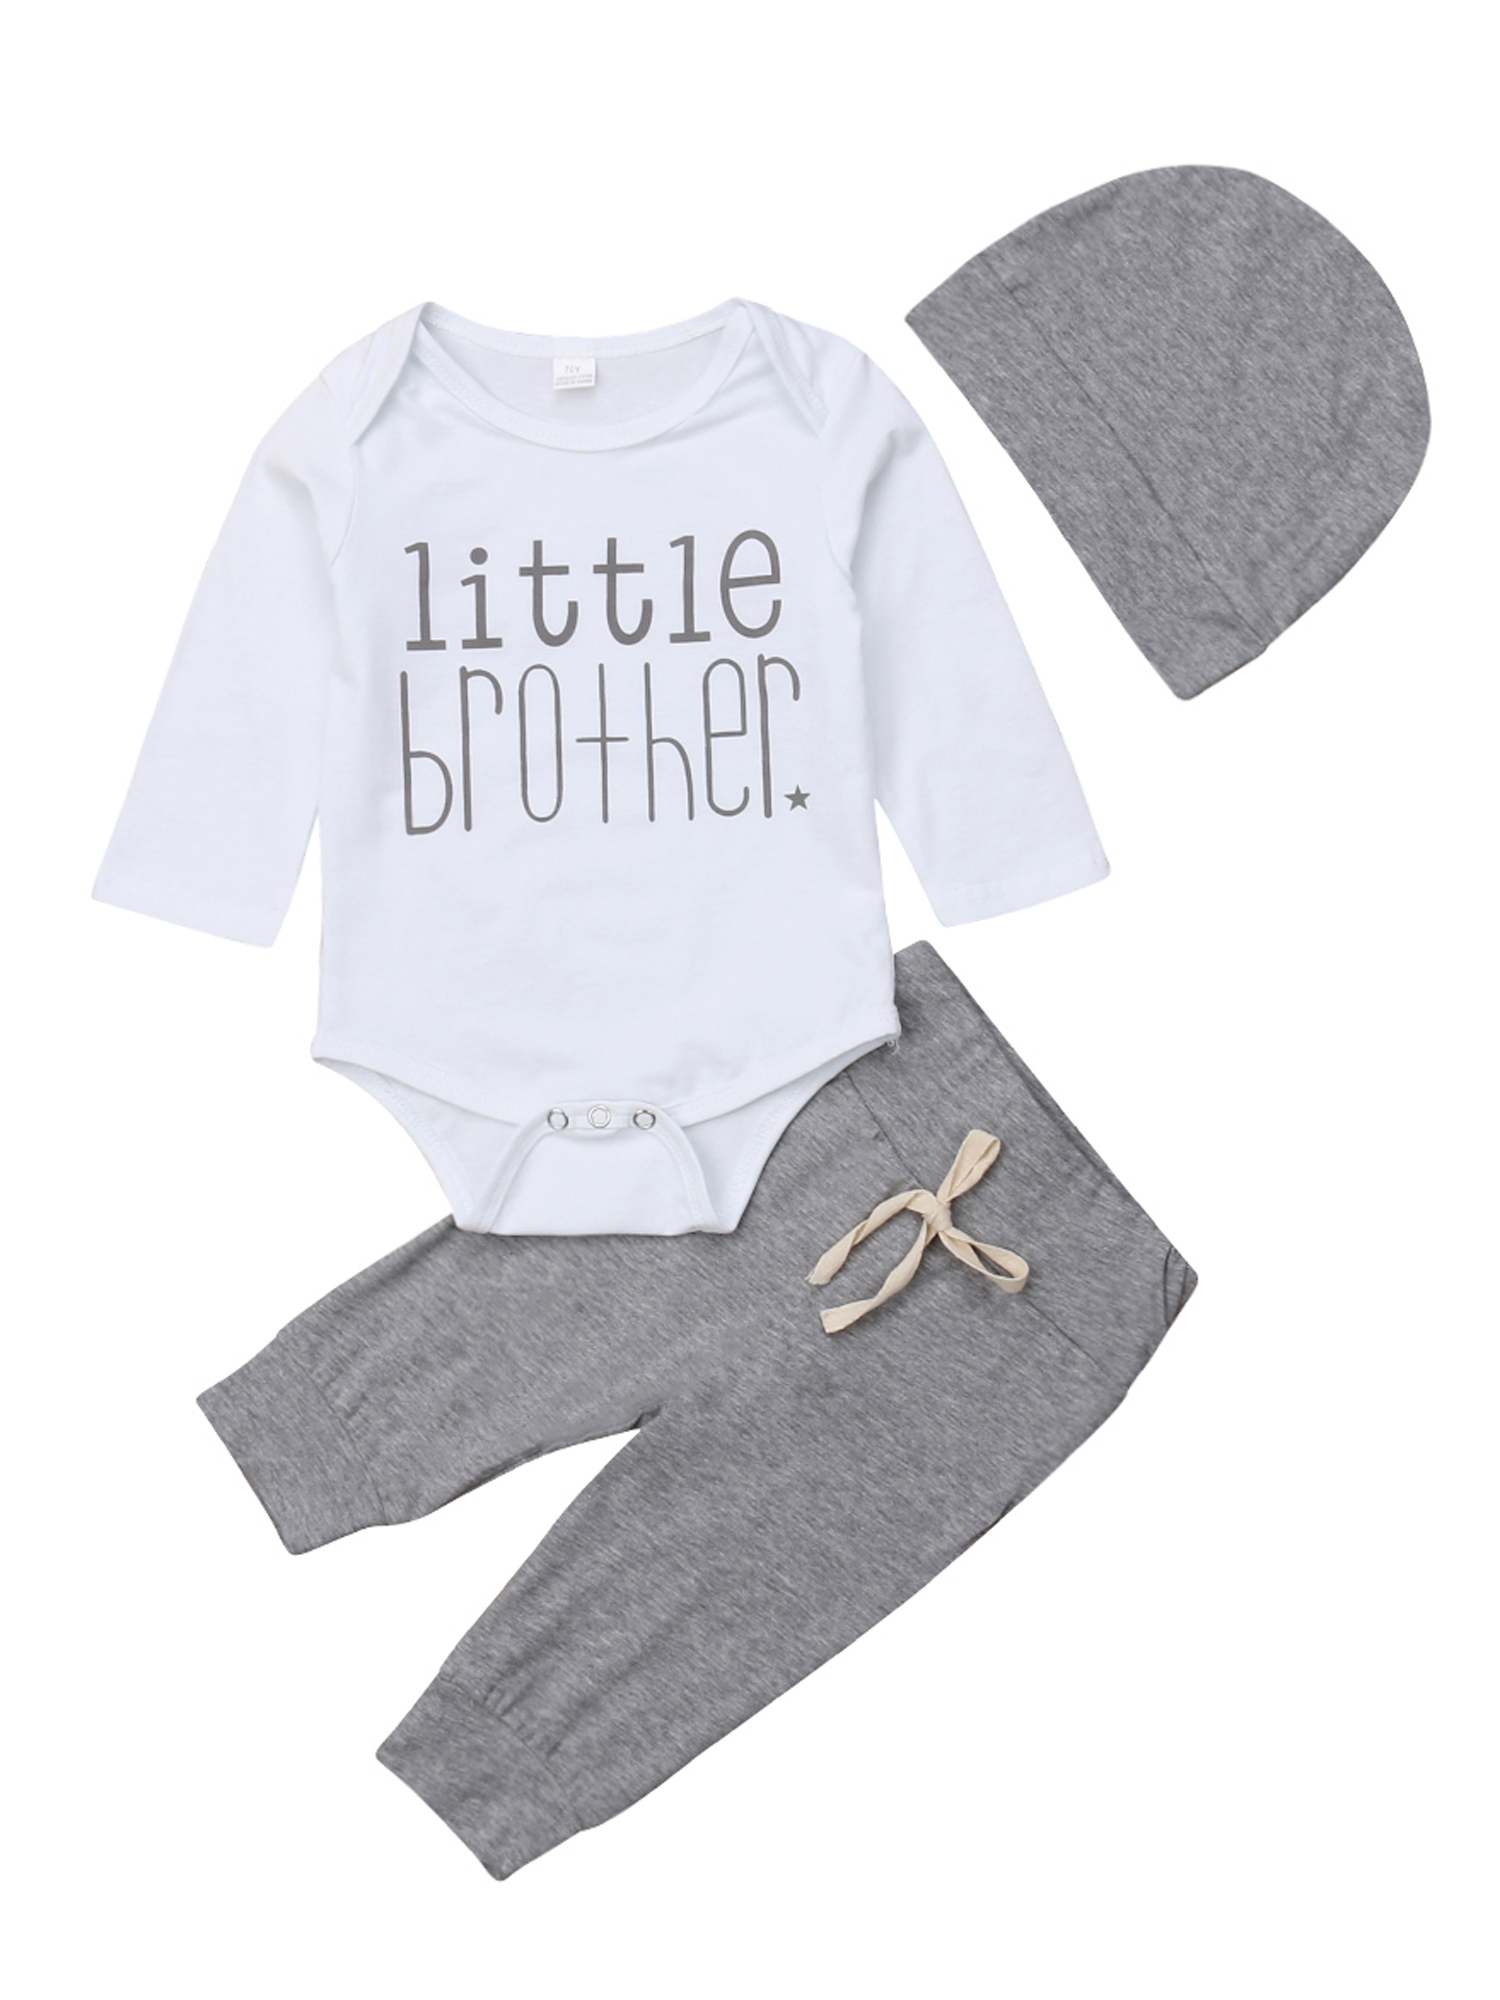 Baby Clothes Set for 0-24 Months 2 Pcs Set Long Sleeves Letter Print Tops Blouse Pants Outfits JYC